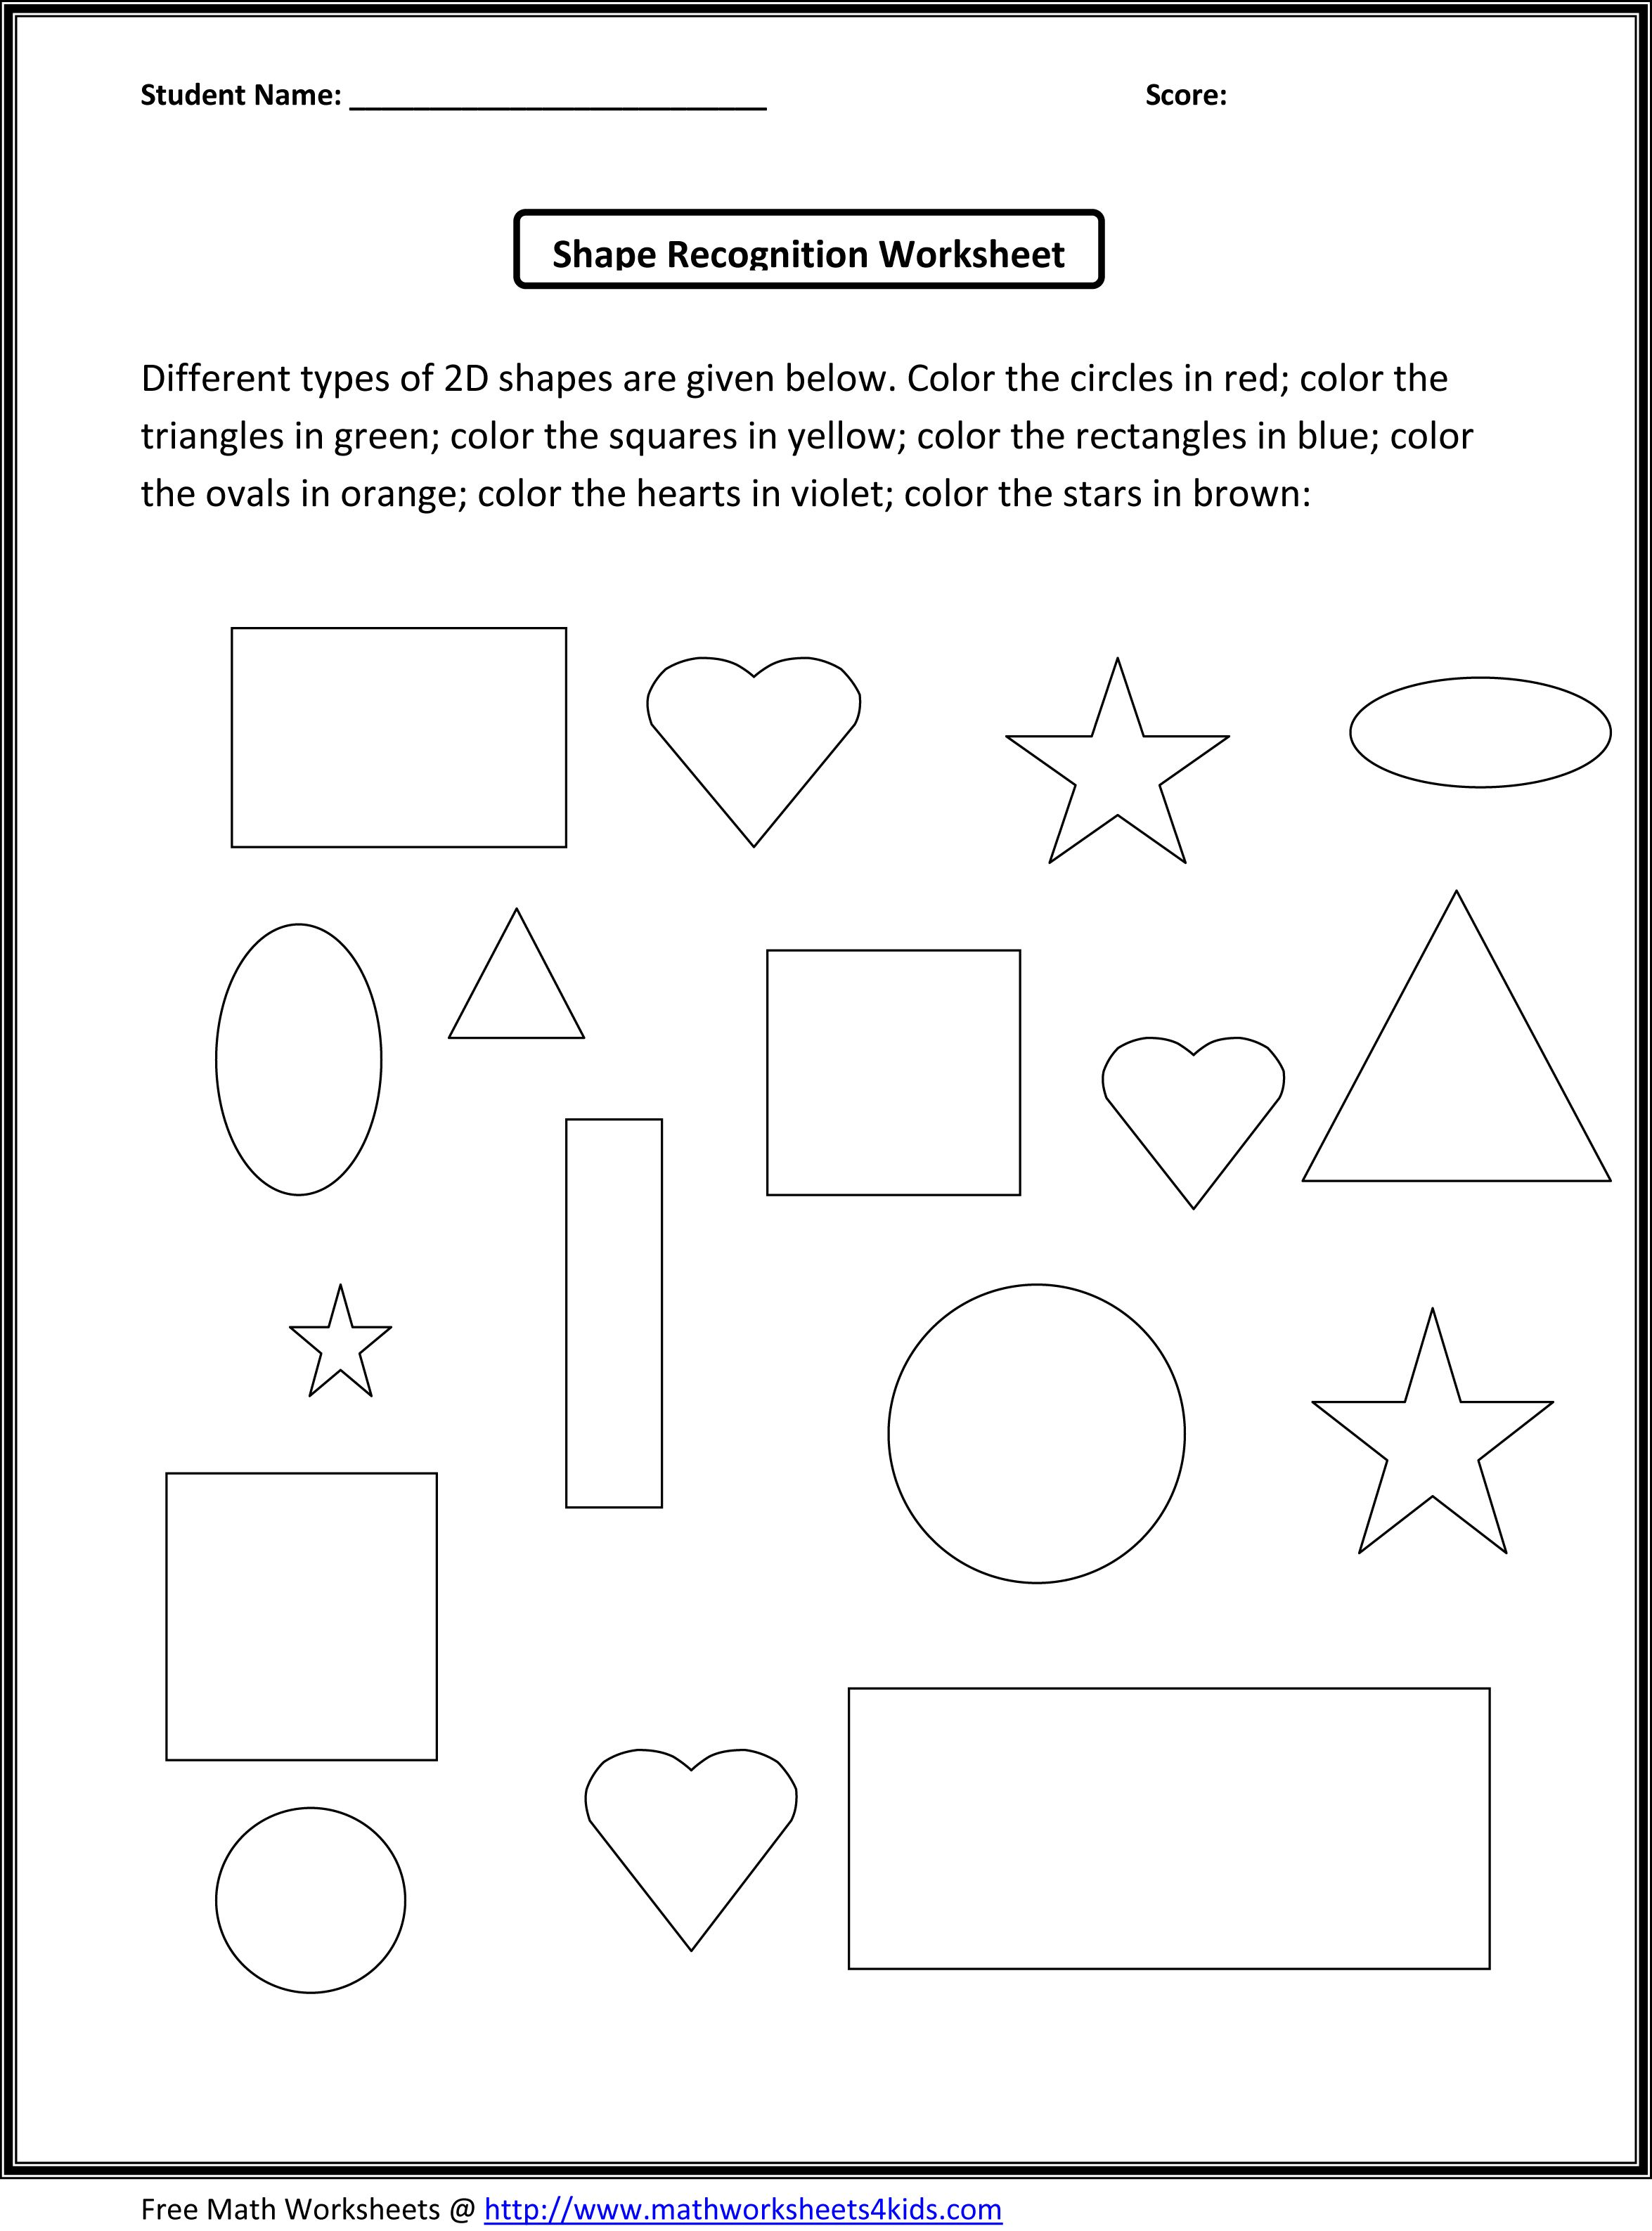 3d Shapes For Kids Worksheets Cakepins Com Shape Worksheets For Preschool Shapes Worksheet Kindergarten Shapes Worksheets